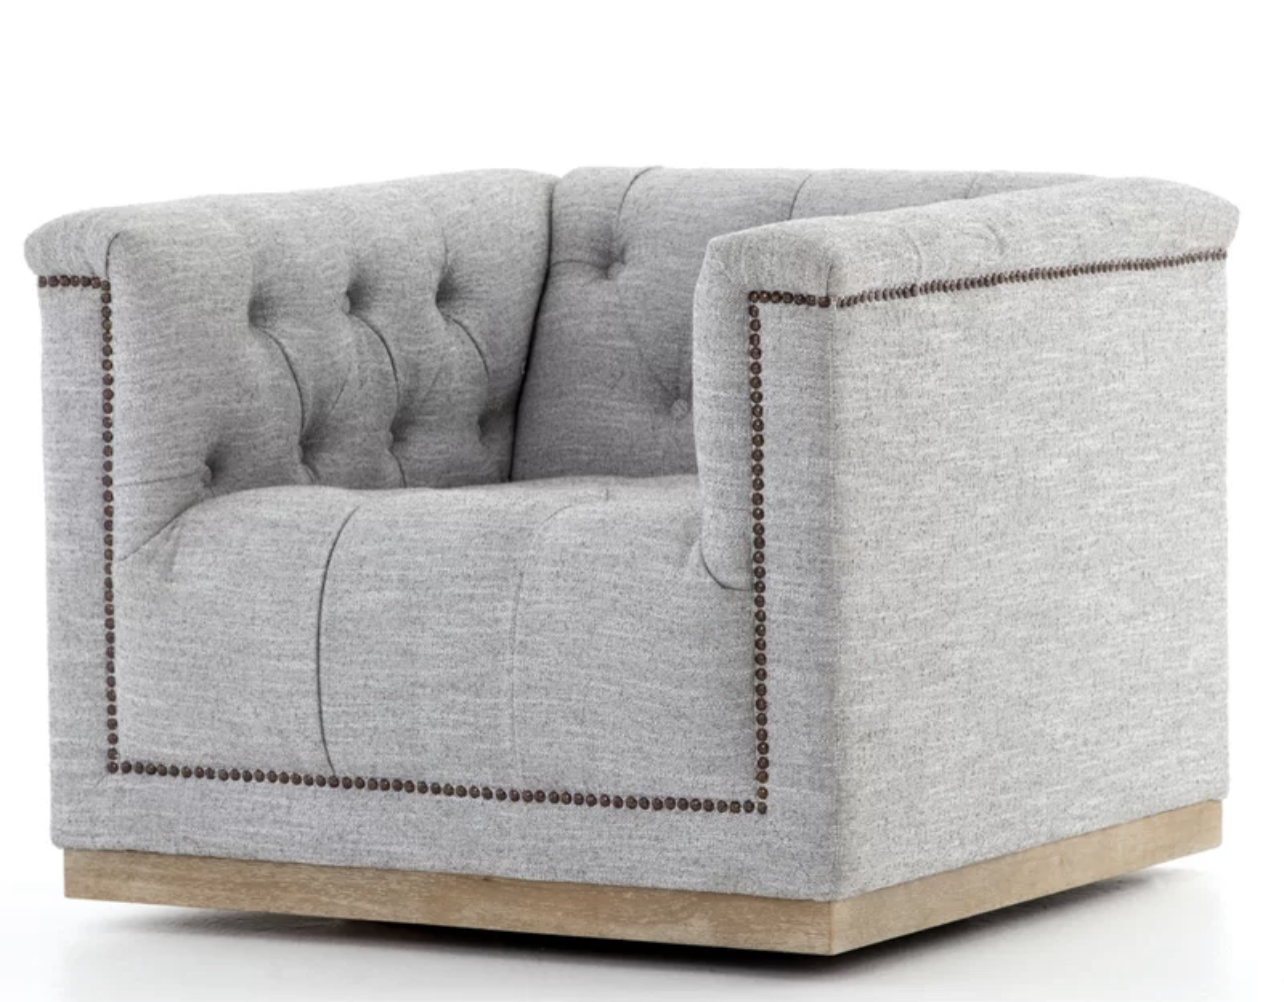 Purchase Amazing Collection of Accent Chairs